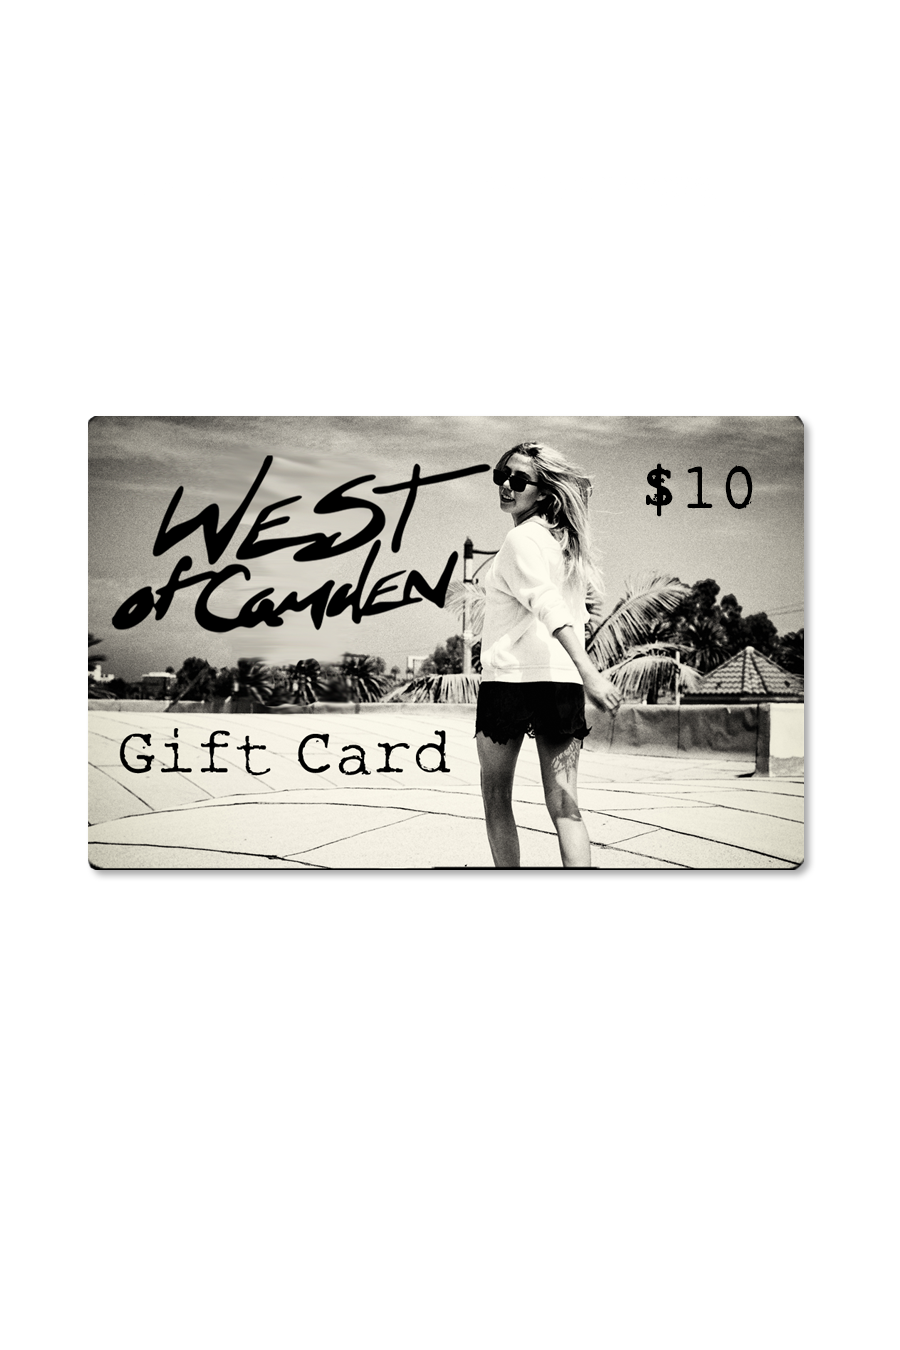 Gift Card - West of Camden